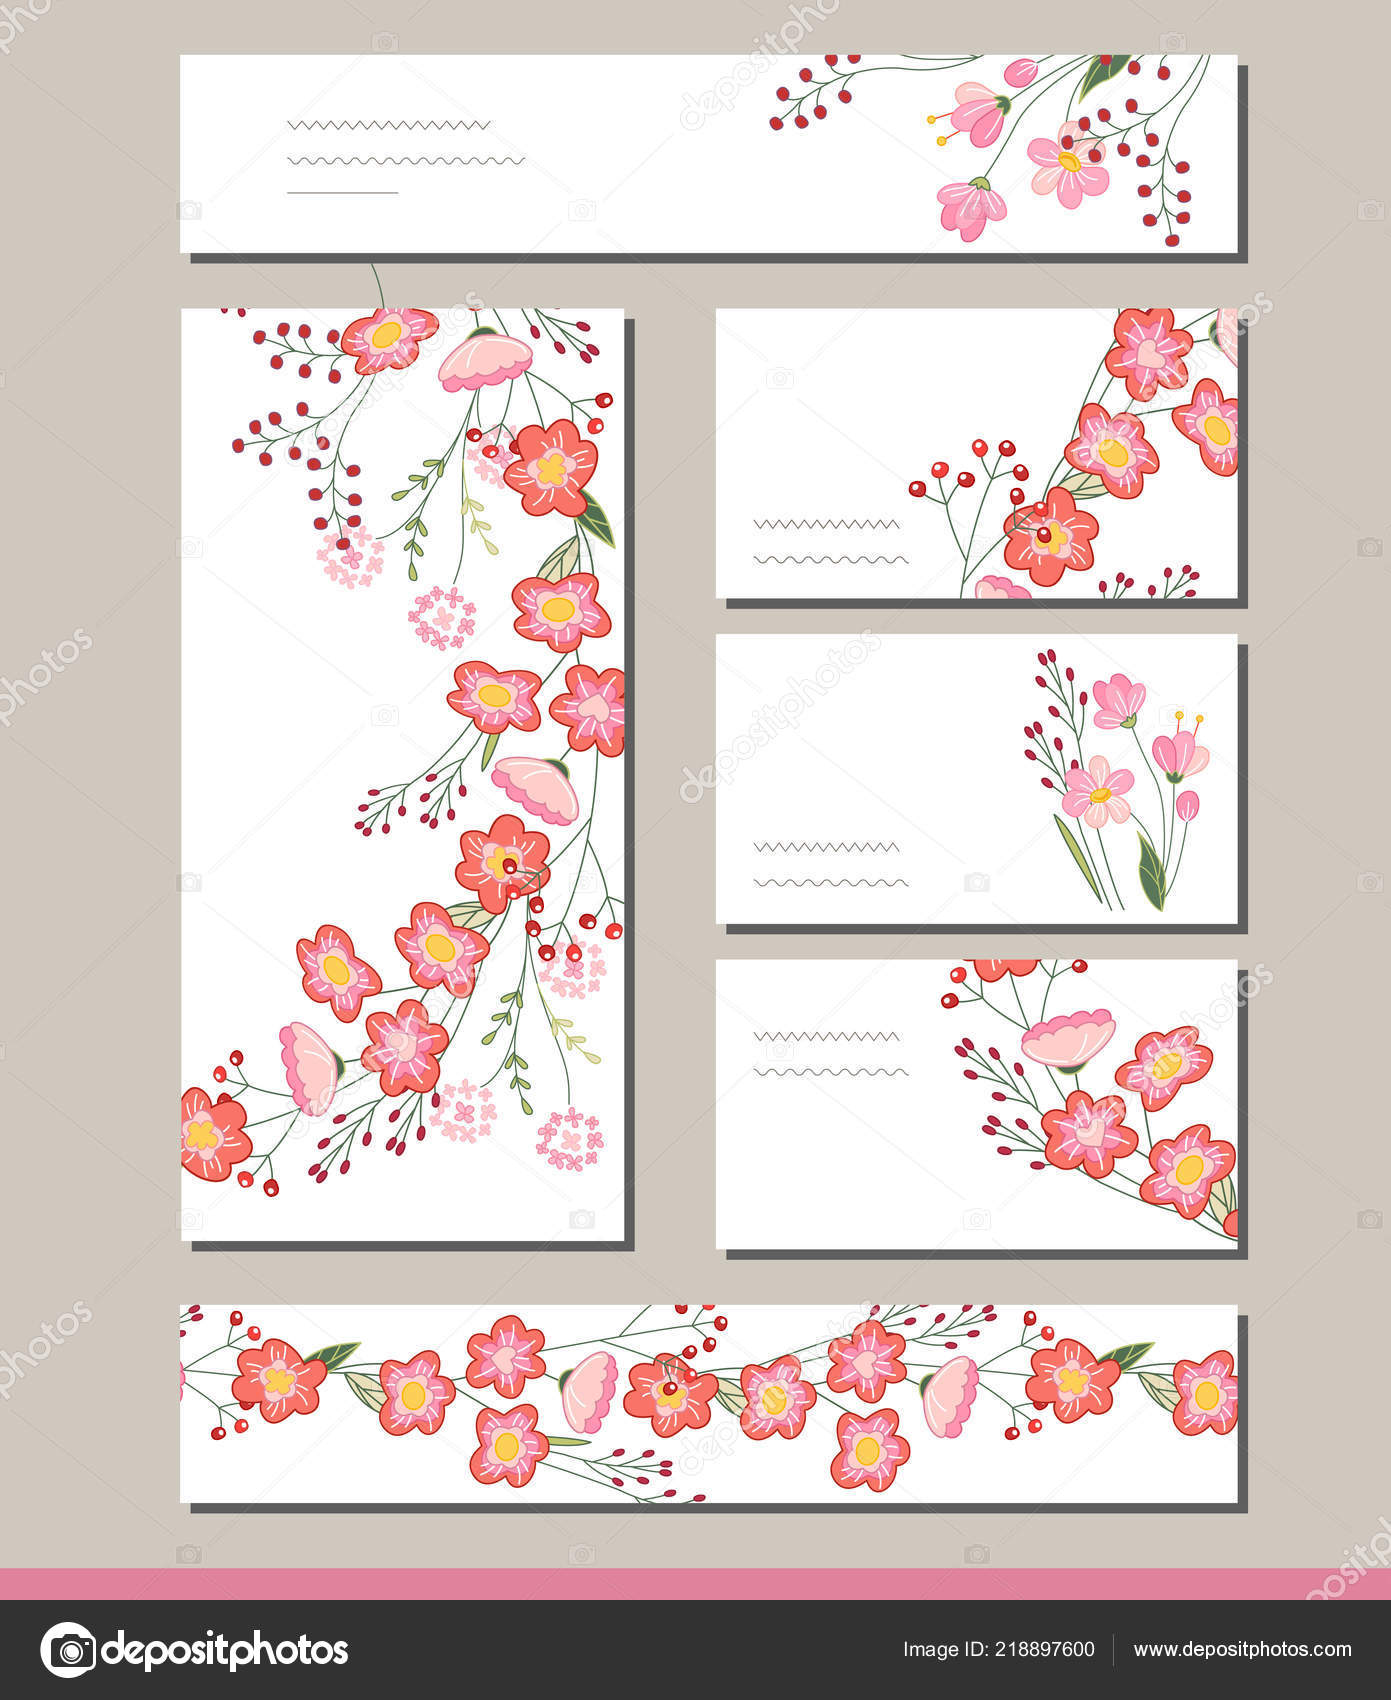 floral spring templates cute bunches red roses romantic easter